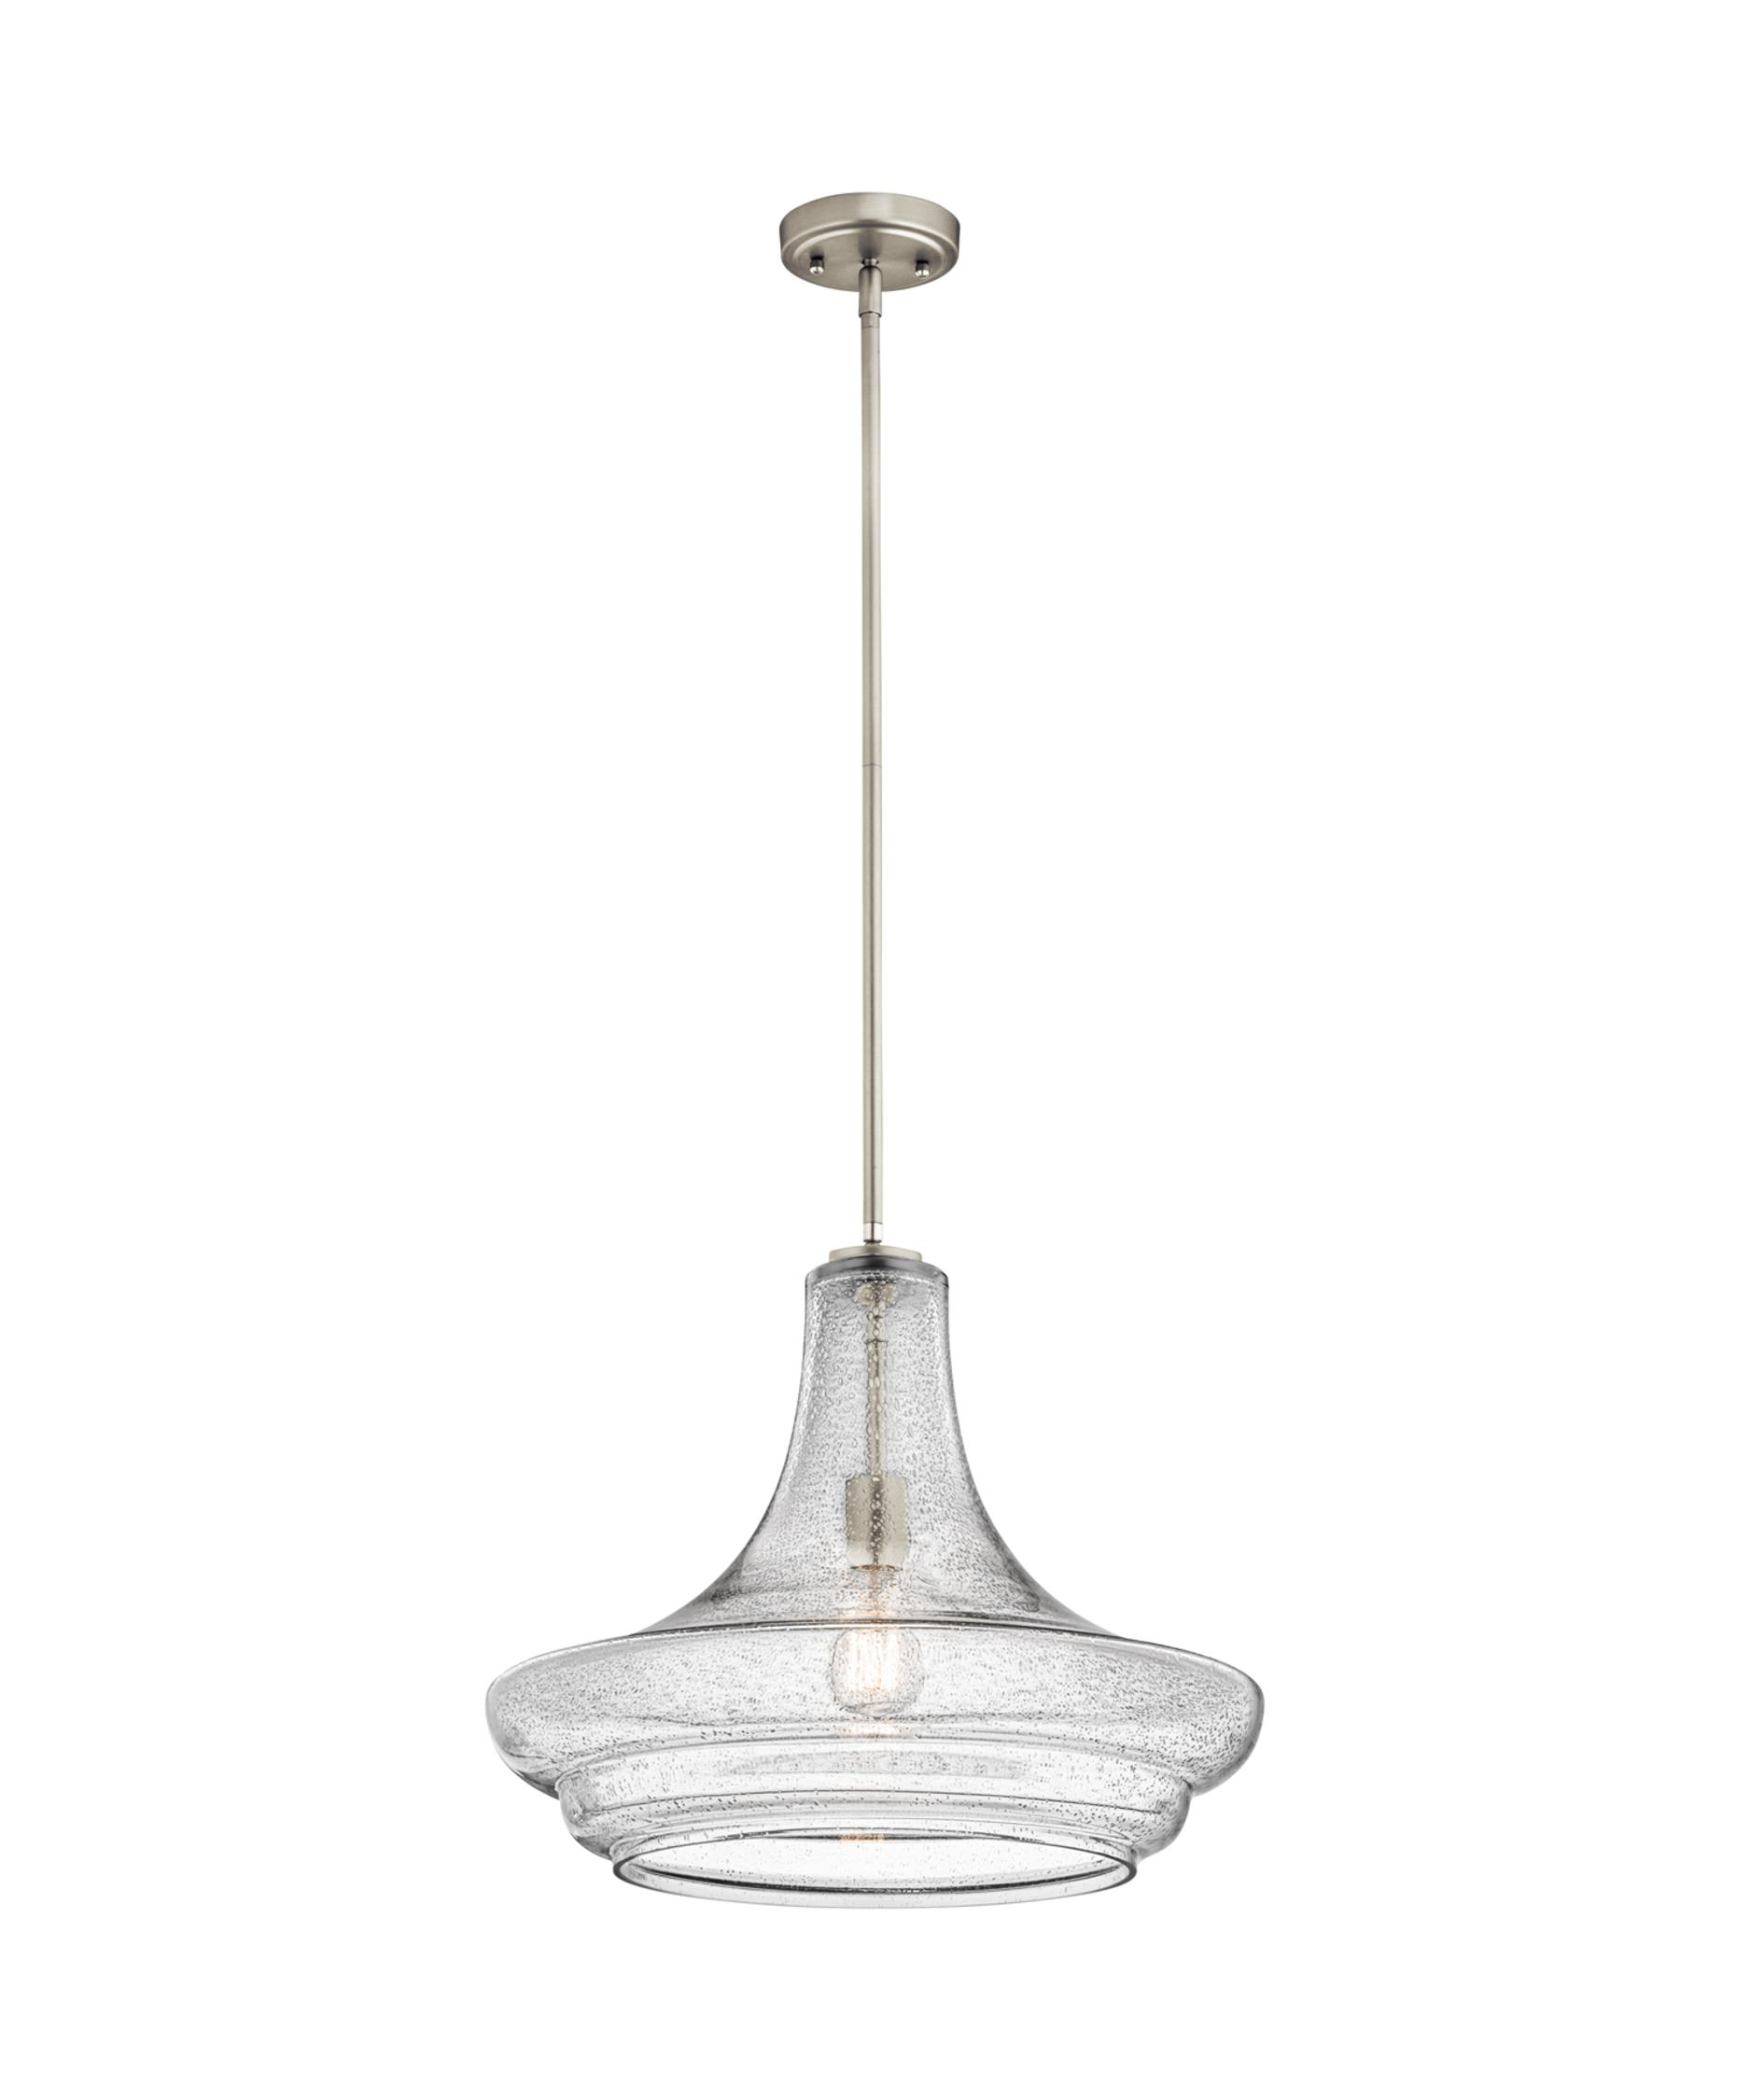 Kichler lighting 42548clp triad 3 light linear pendant classic pewter - Shown In Brushed Nickel Finish And Clear Seedy Glass Kichler Lighting